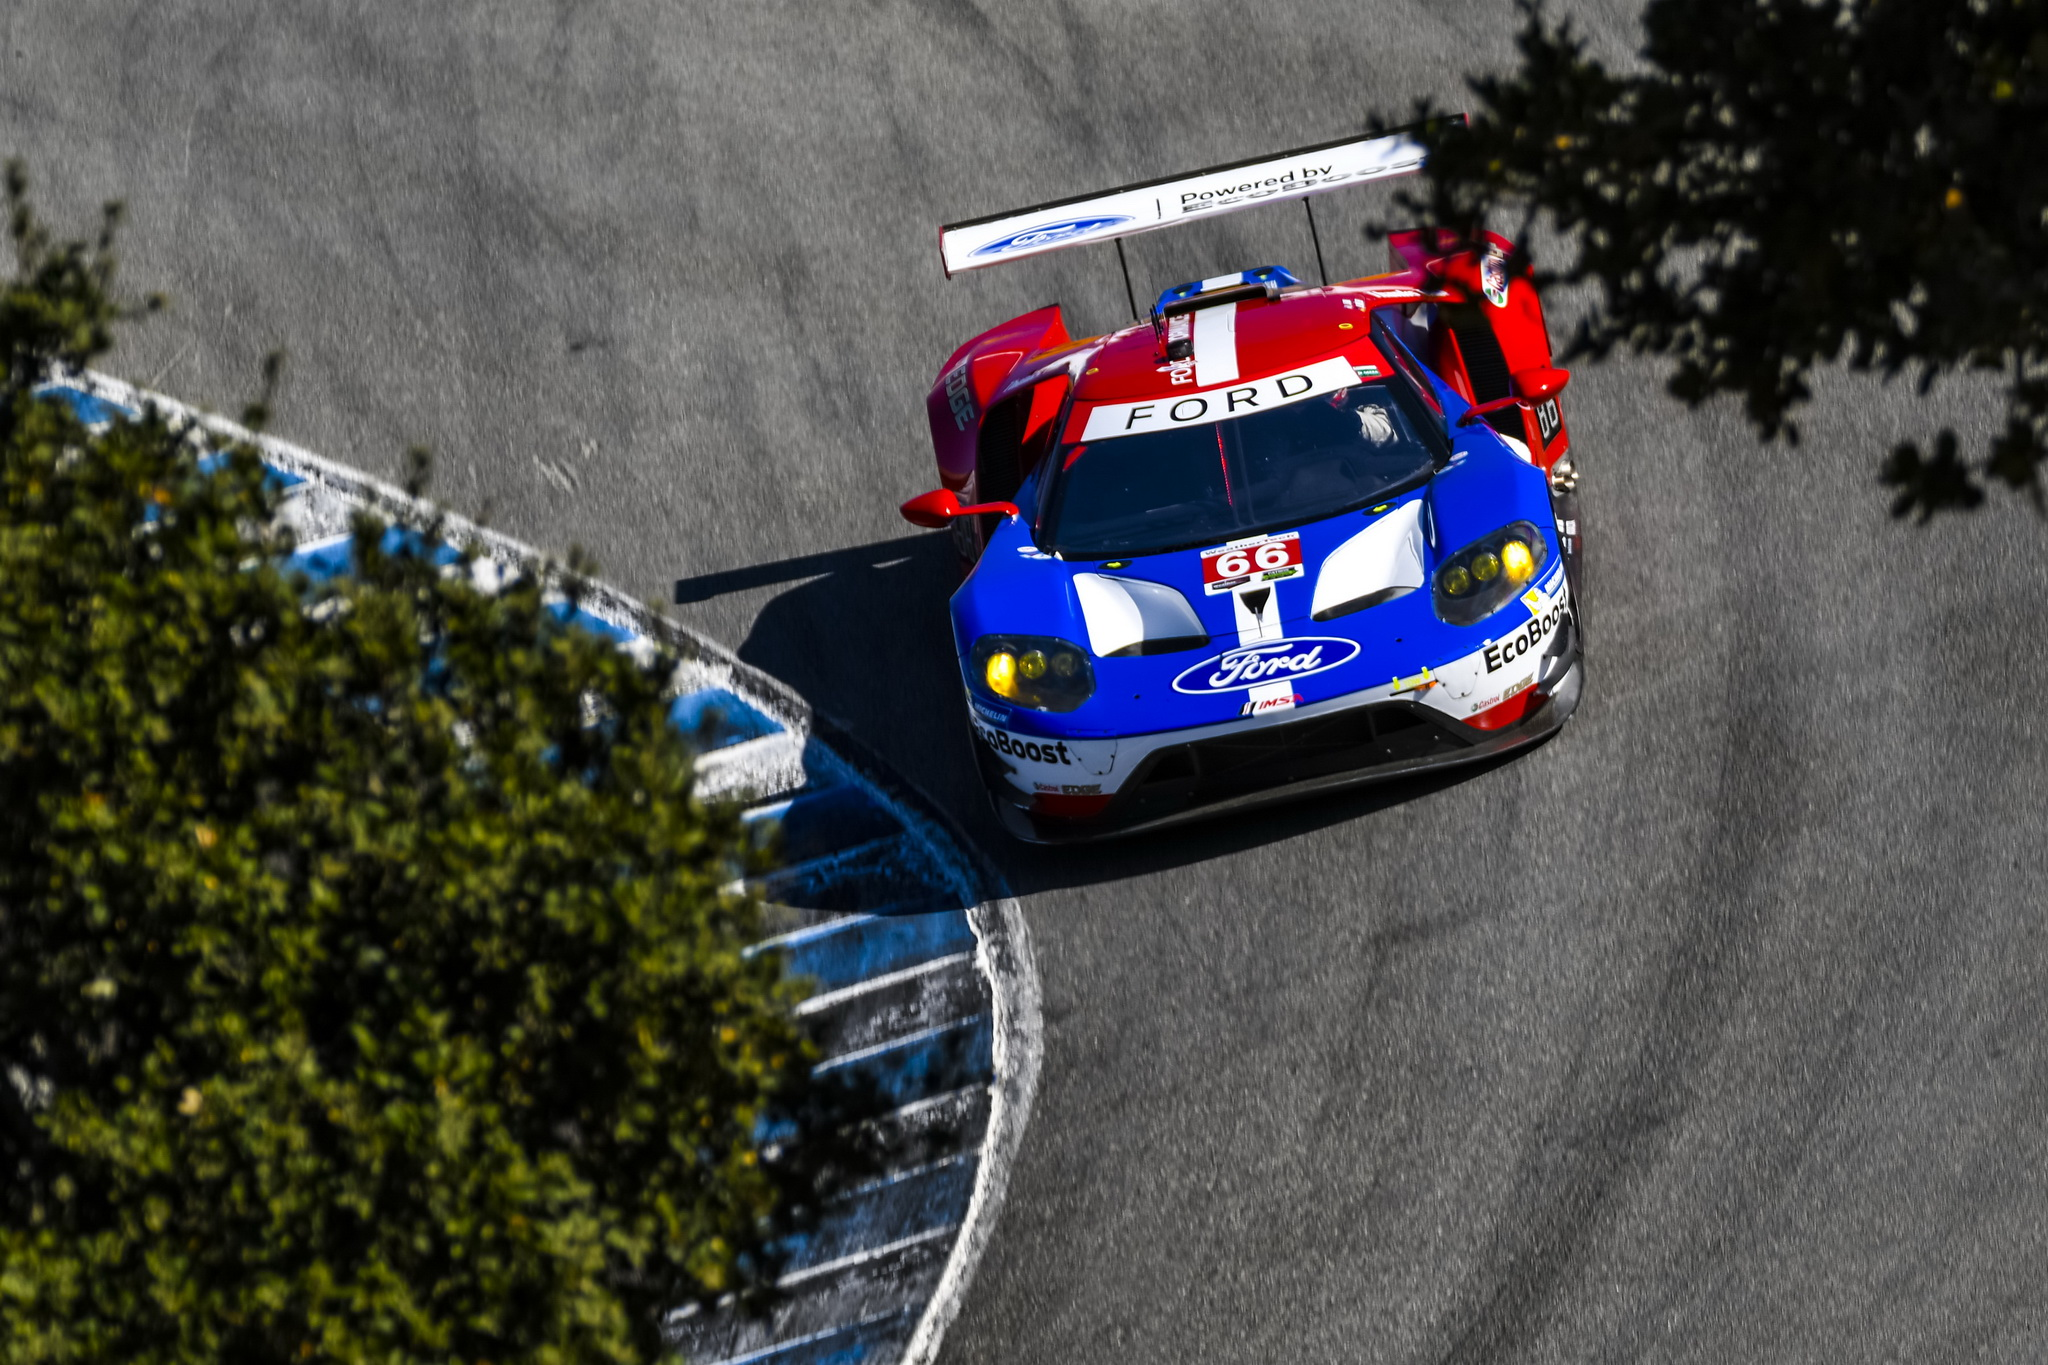 Ford Chip Ganassi Racing Finishes Mid-Pack After Showing Speed at Laguna Seca